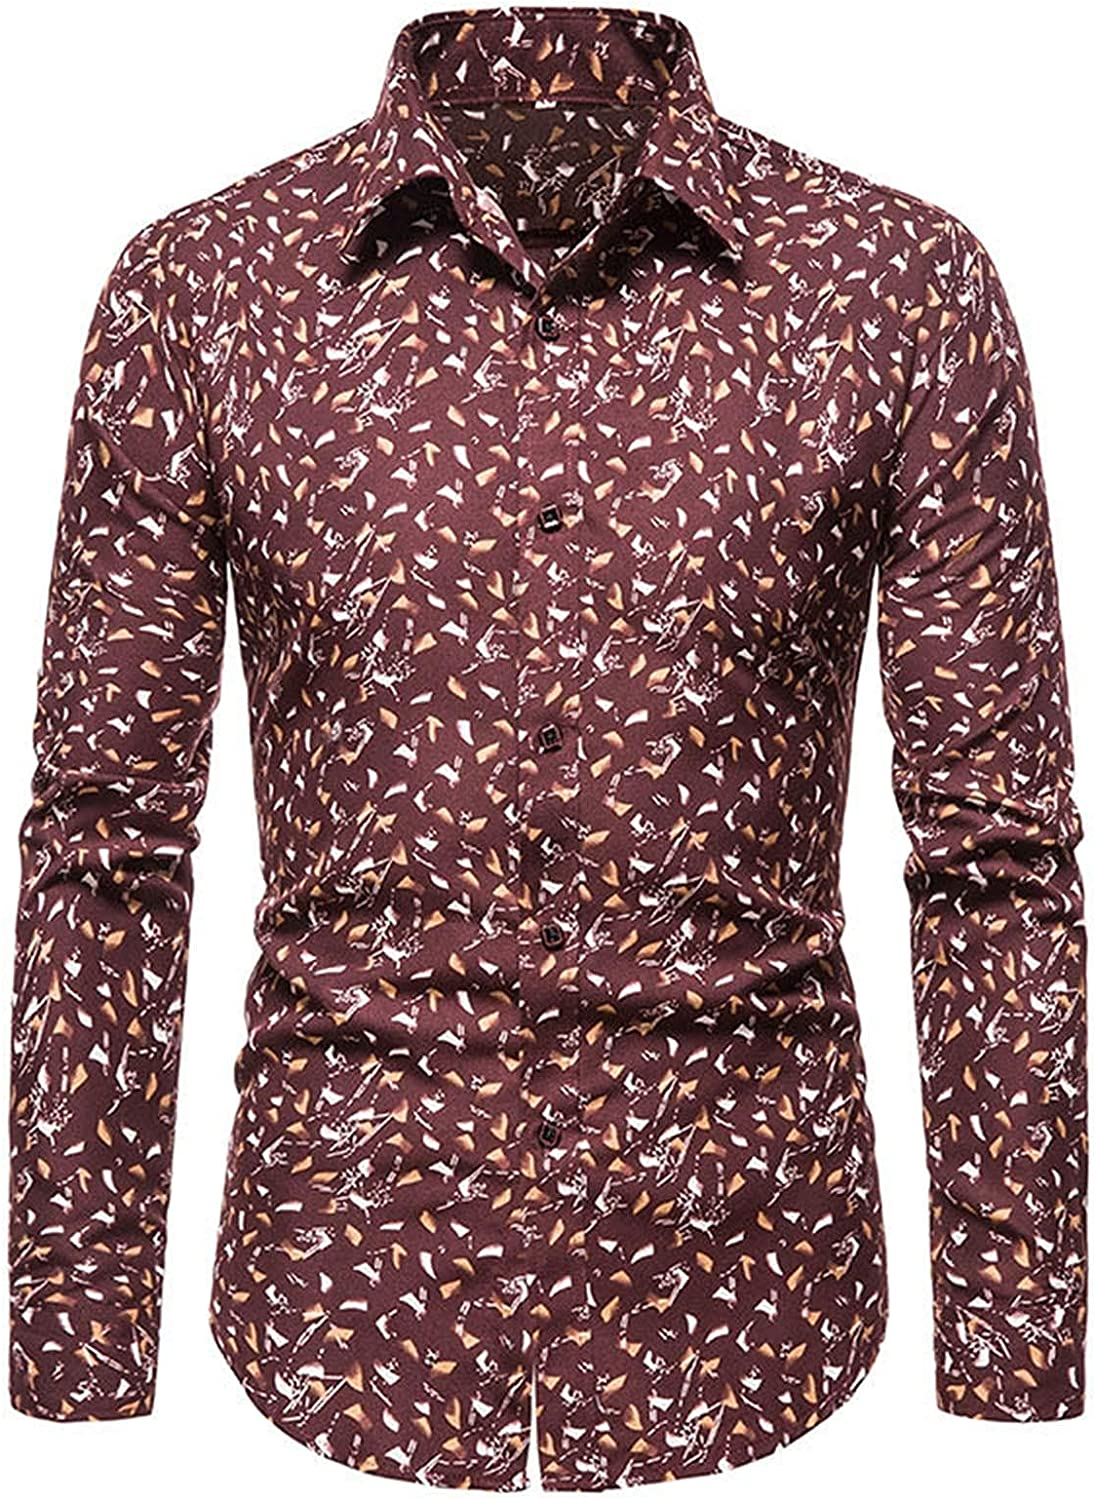 Mens Floral Printed Button Down Business Dress Shirts Casual Slim Fit Long Sleeve Collar Wedding Party Work Shirt Tops